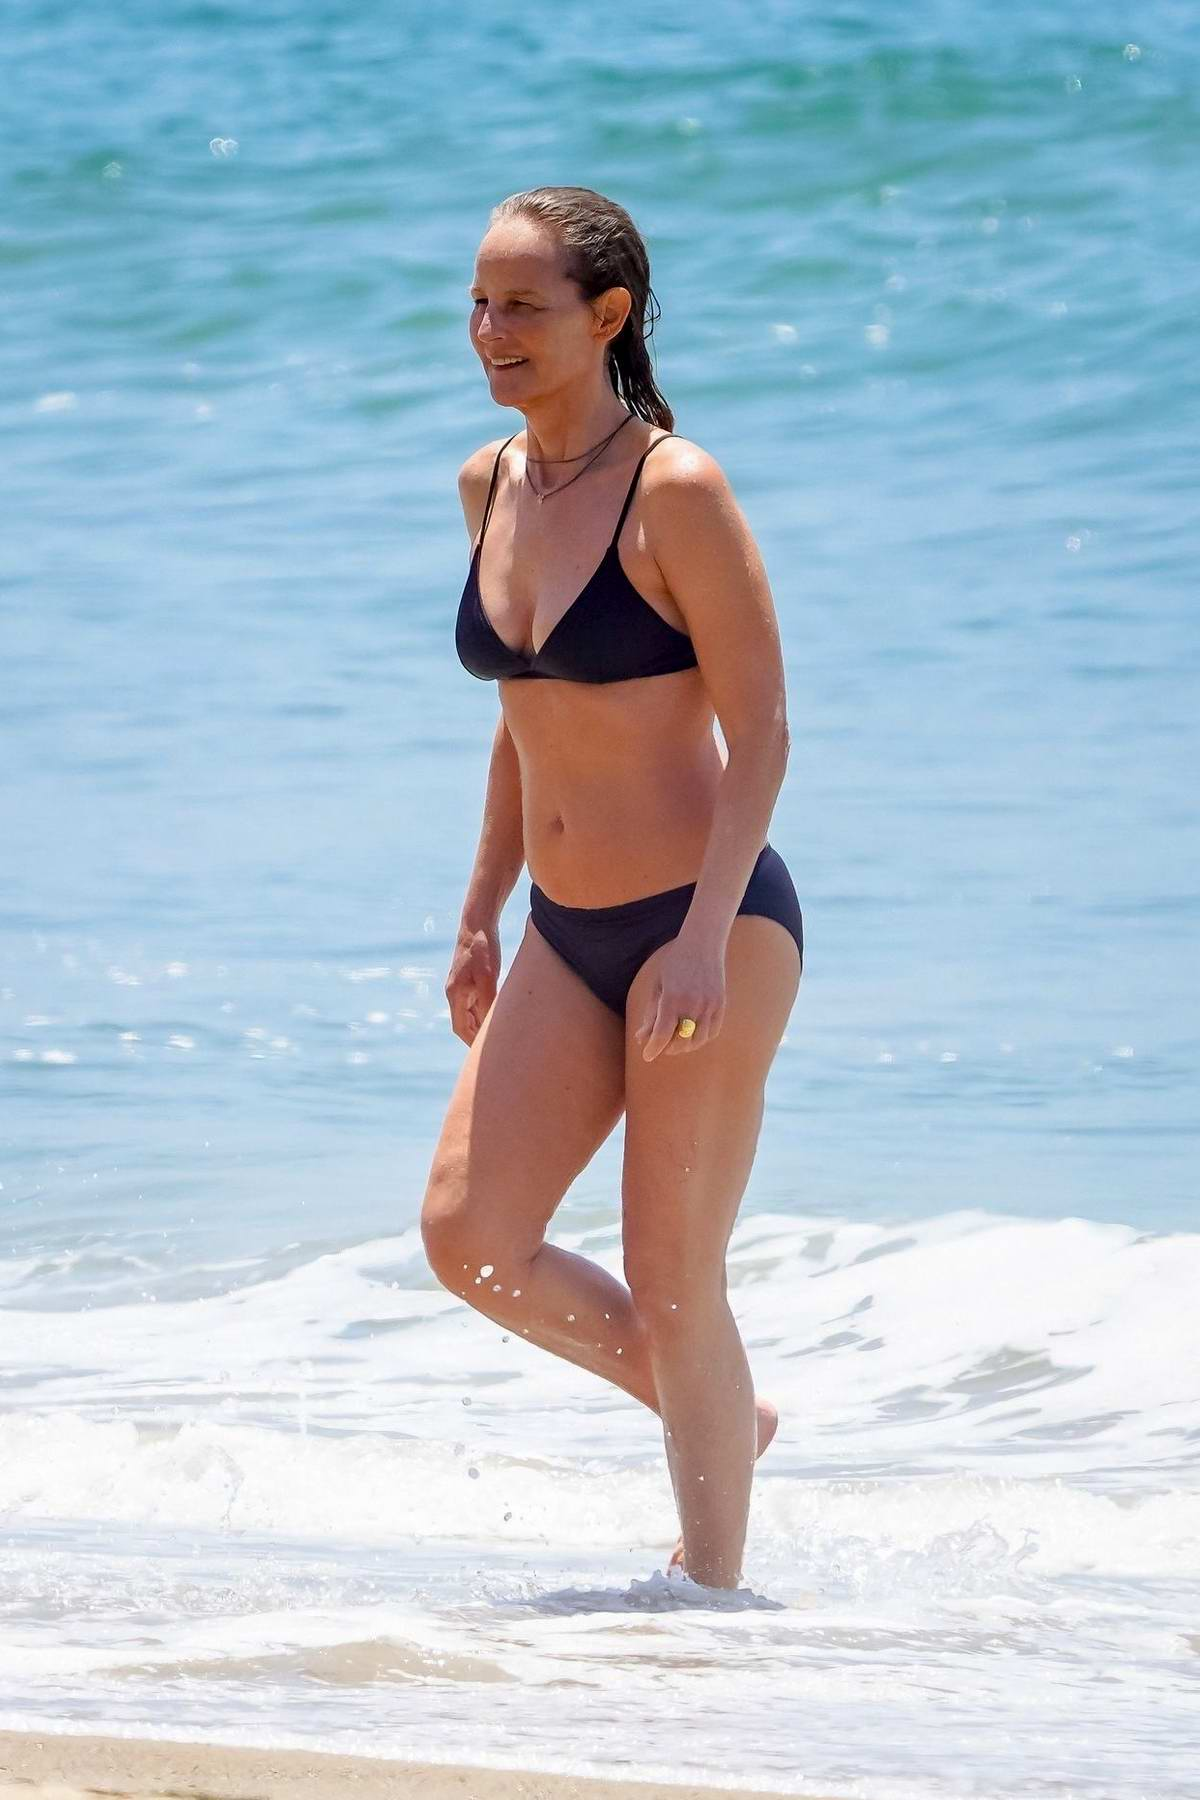 Helen Hunt wears a black bikini during a beach day in Malibu, California